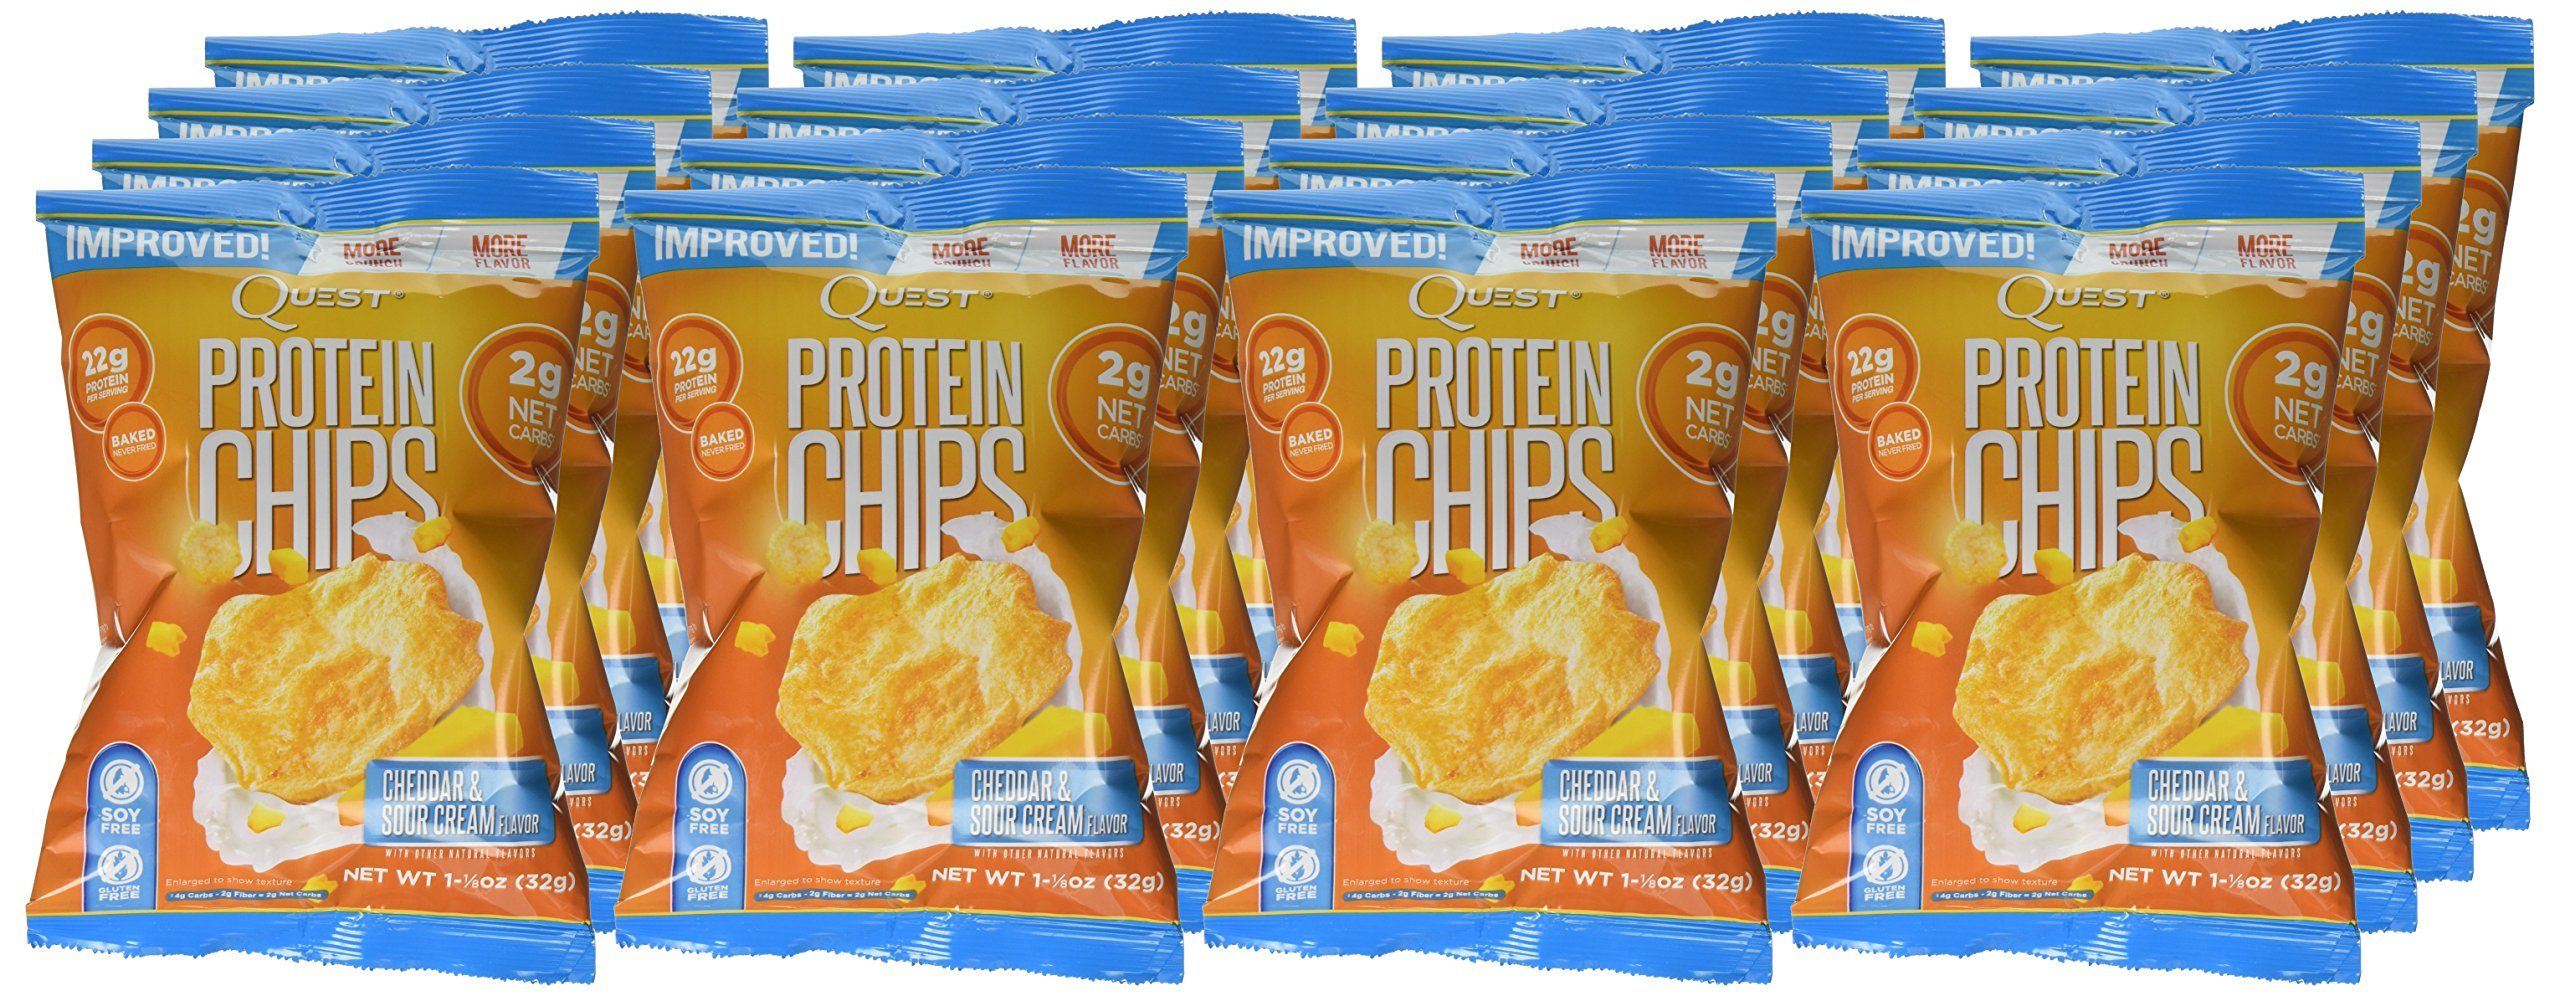 Quest Nutrition Protein Chips, Cheddar and Sour Cream, 16 Count by Quest Nutrition (Image #2)